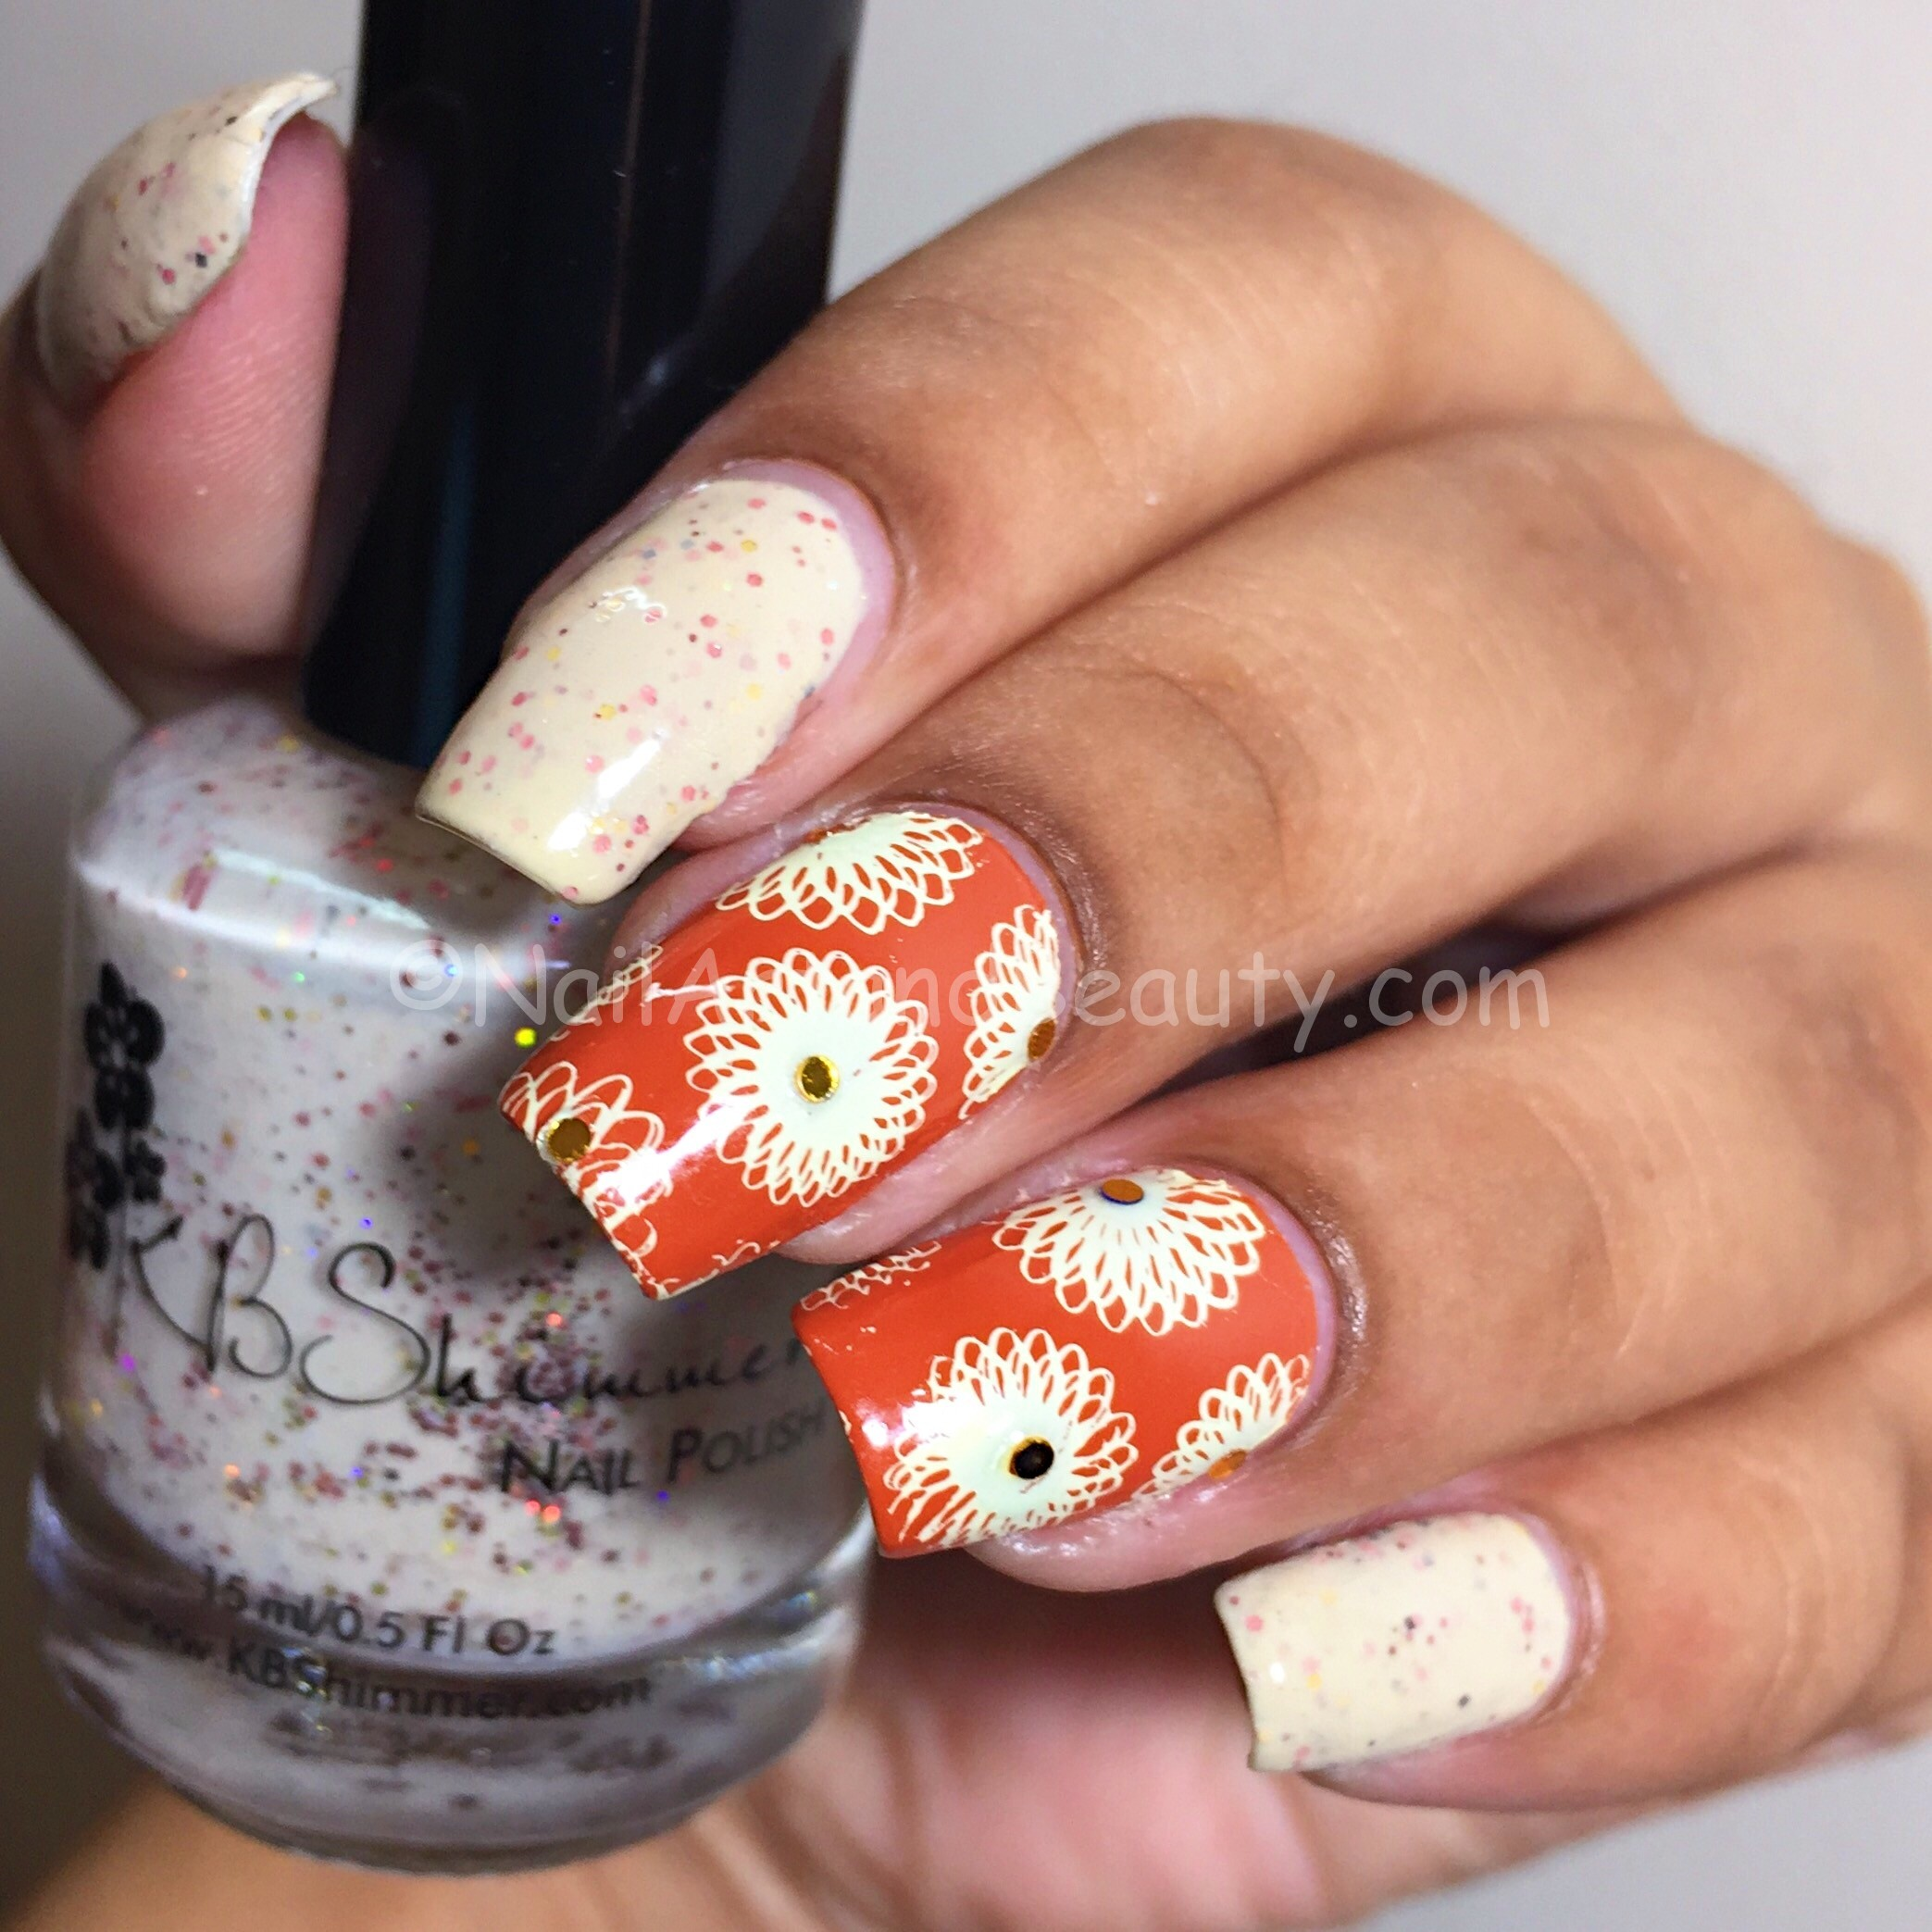 Simple Nail Art on KB Shimmer Tiers of Joy